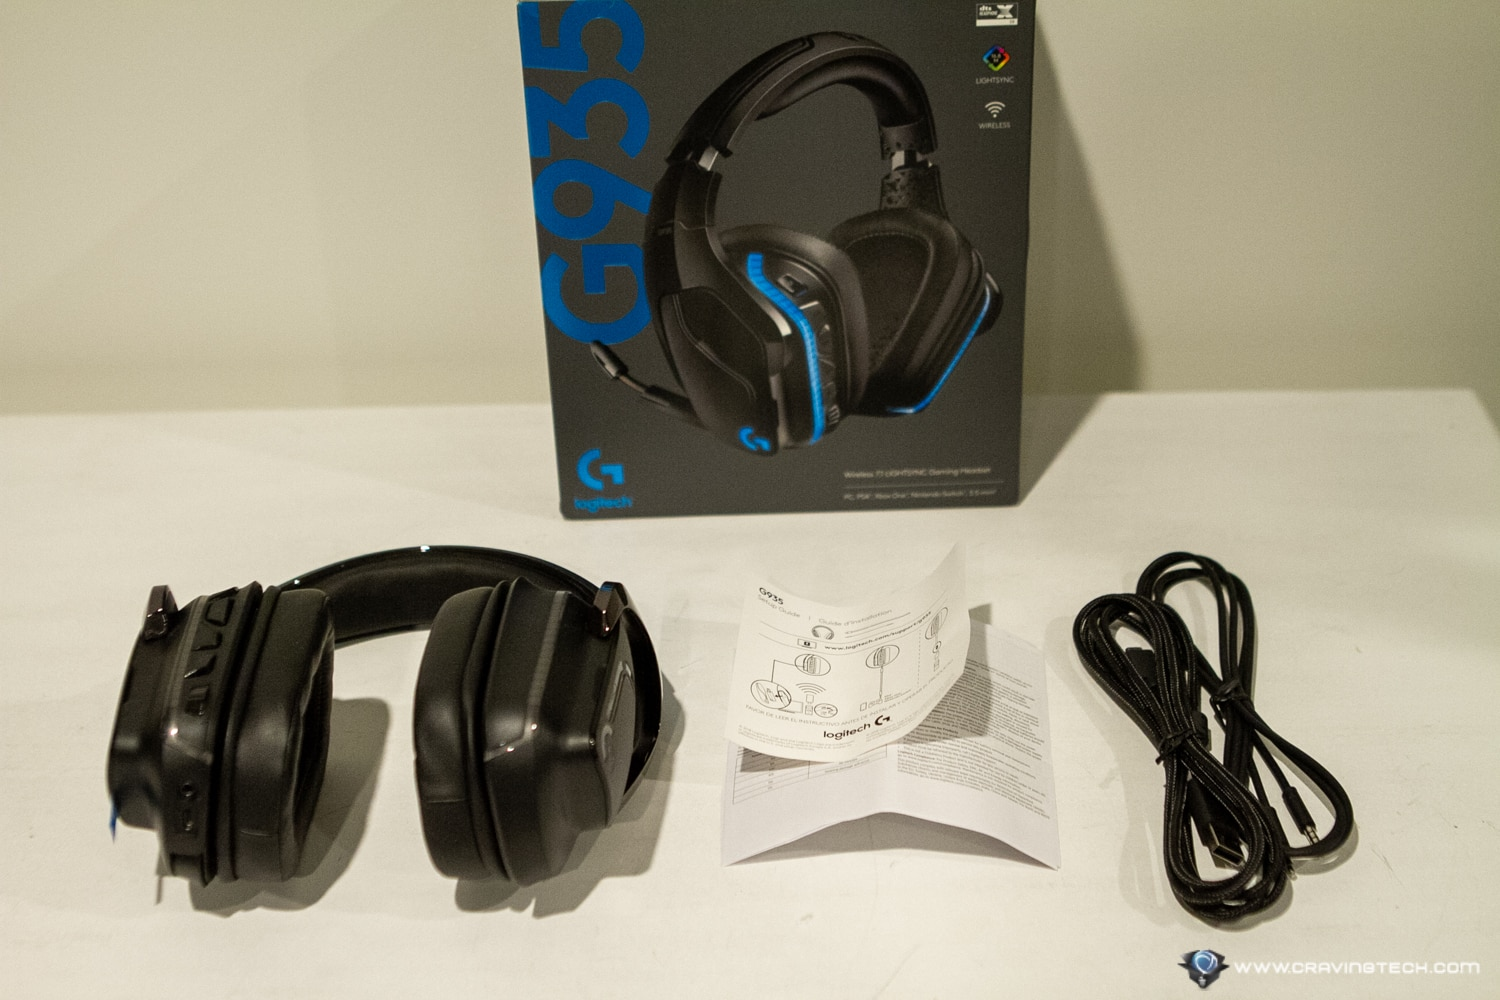 Logitech G935 Gaming Headset Packaging